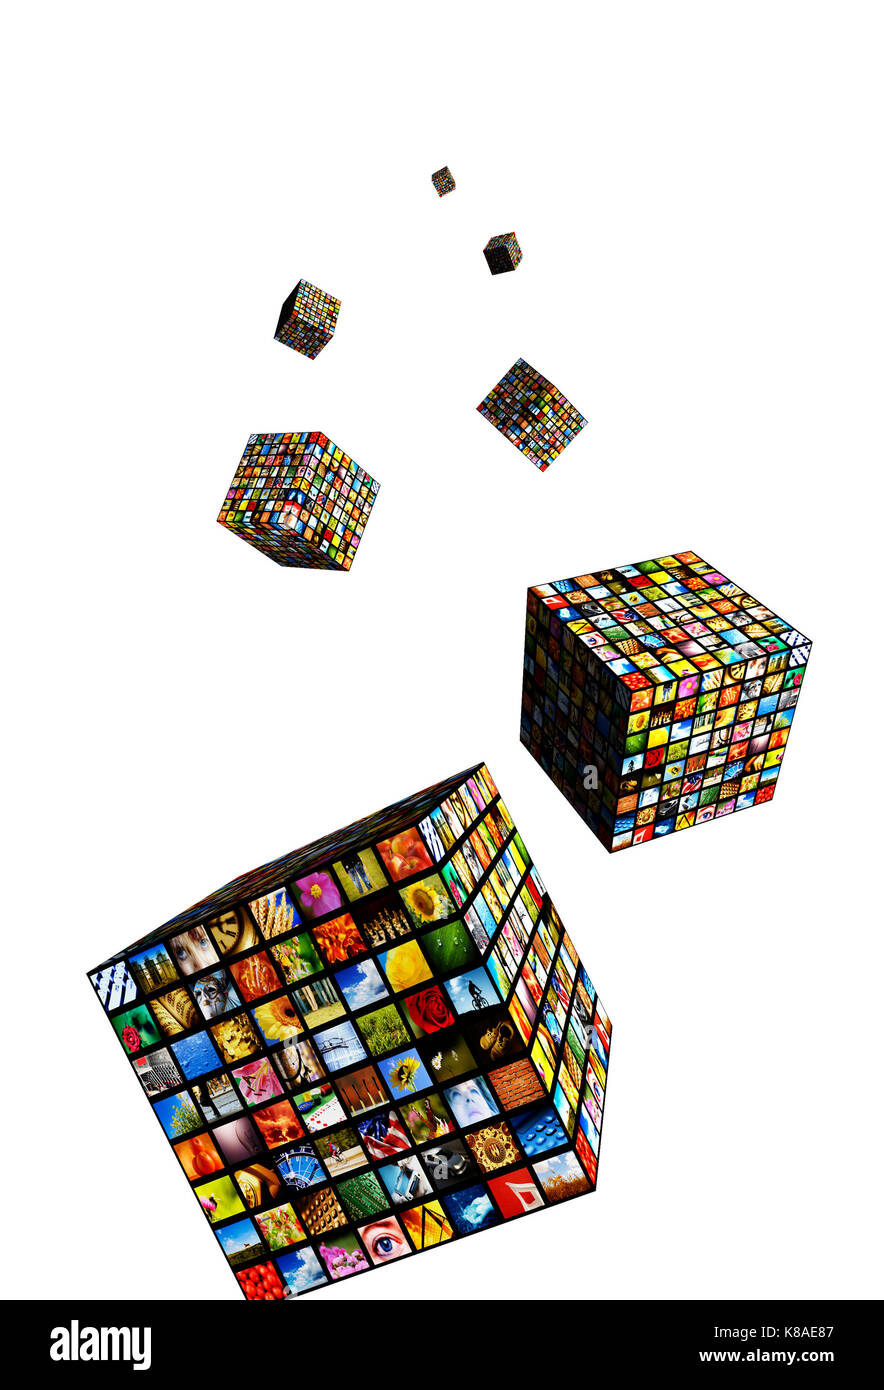 cubes with many screens, internet broadcast and IPTV - Stock Image